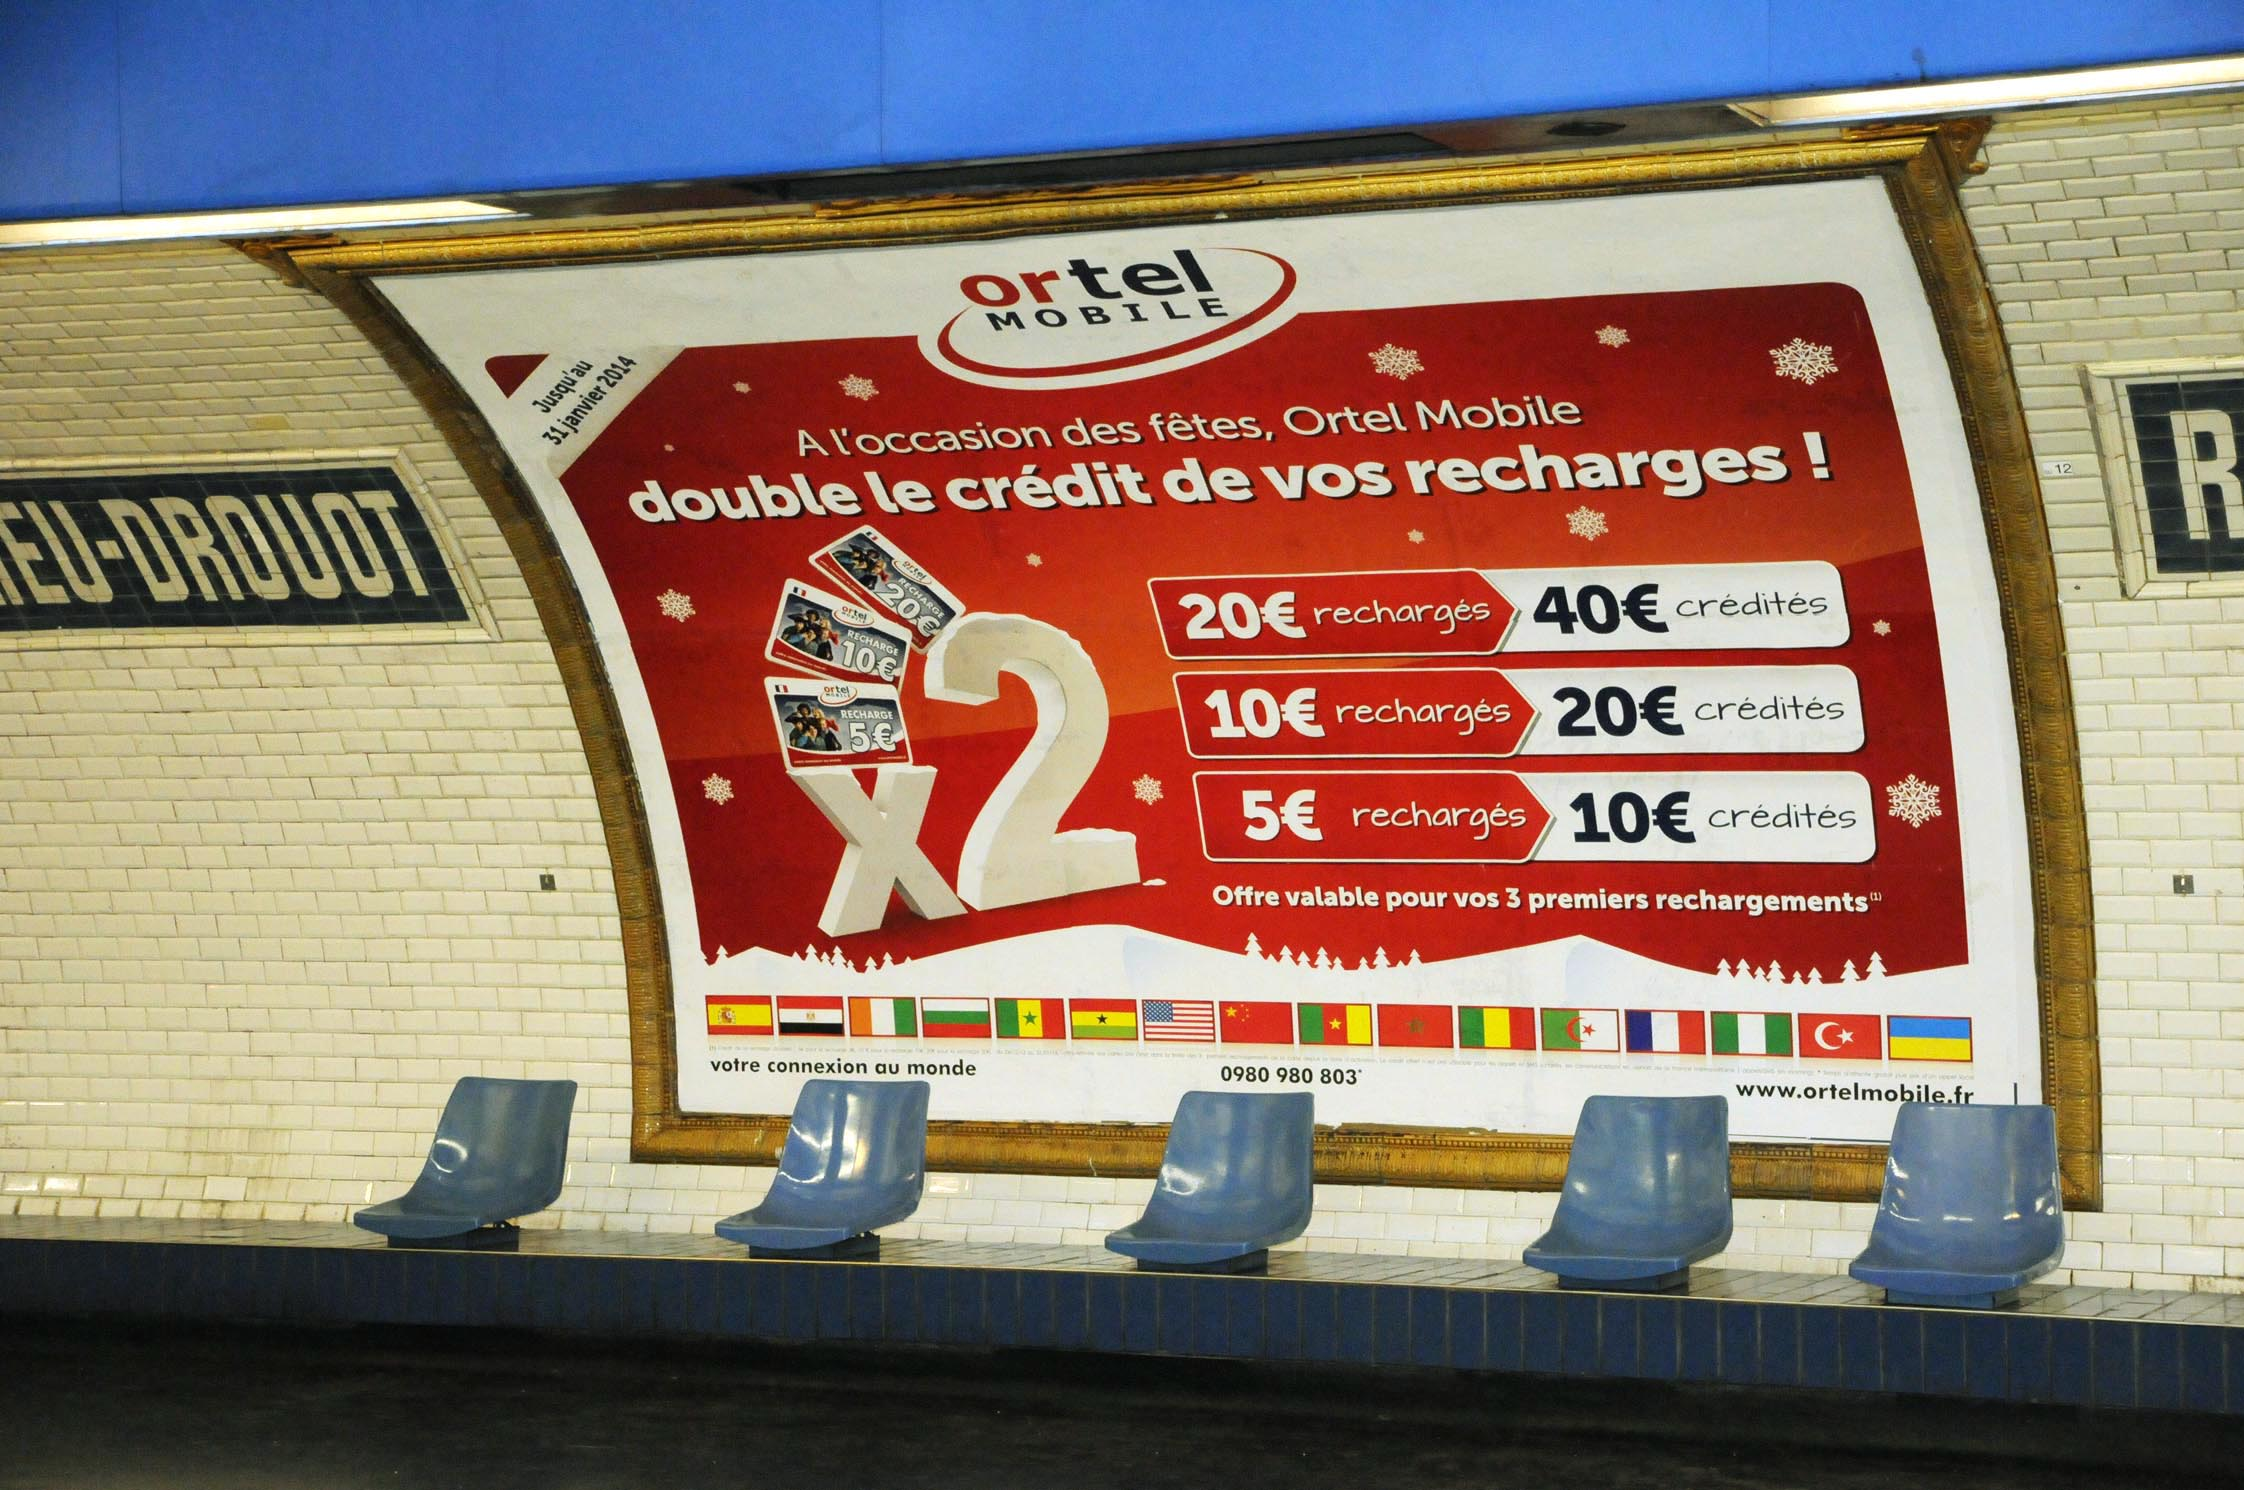 Advertising campaign in paris metro tt visual for Advertising agency paris